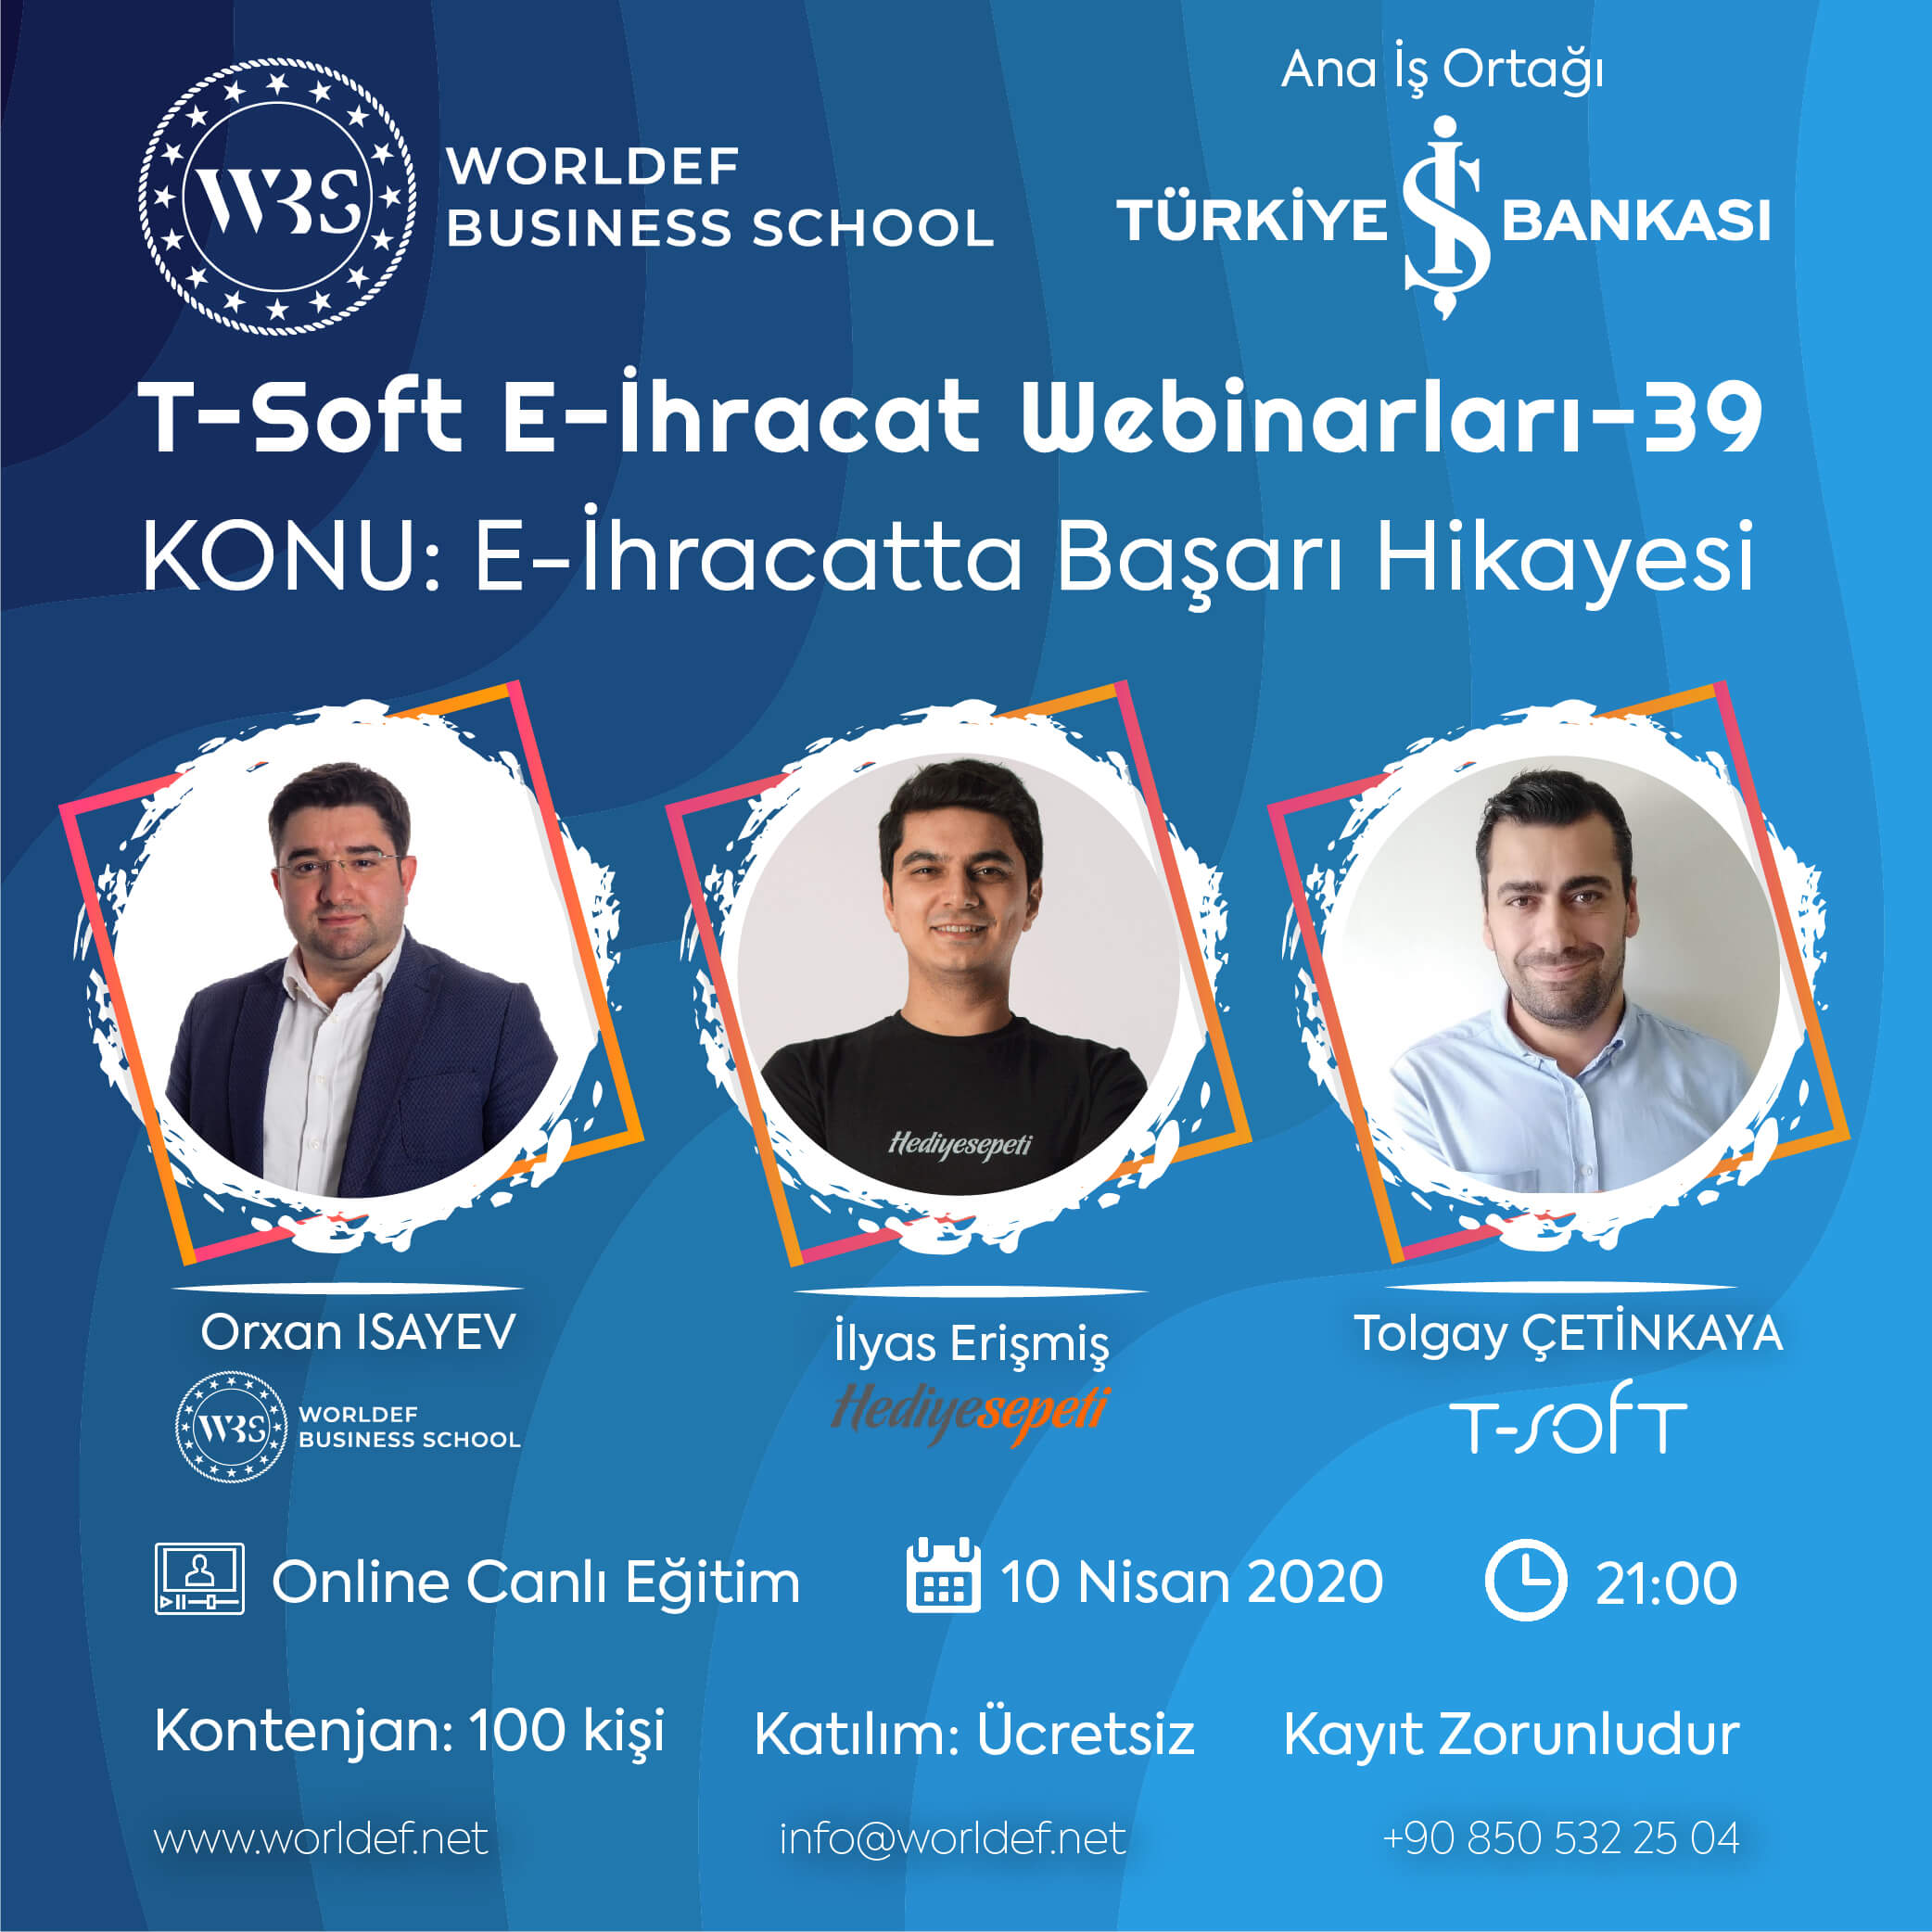 İlyas Erişmiş from GiftSepeti.com, which has achieved great success in the field of e-commerce businesses, will be our guest during the Cross-Border E-Commerce Webinars week!